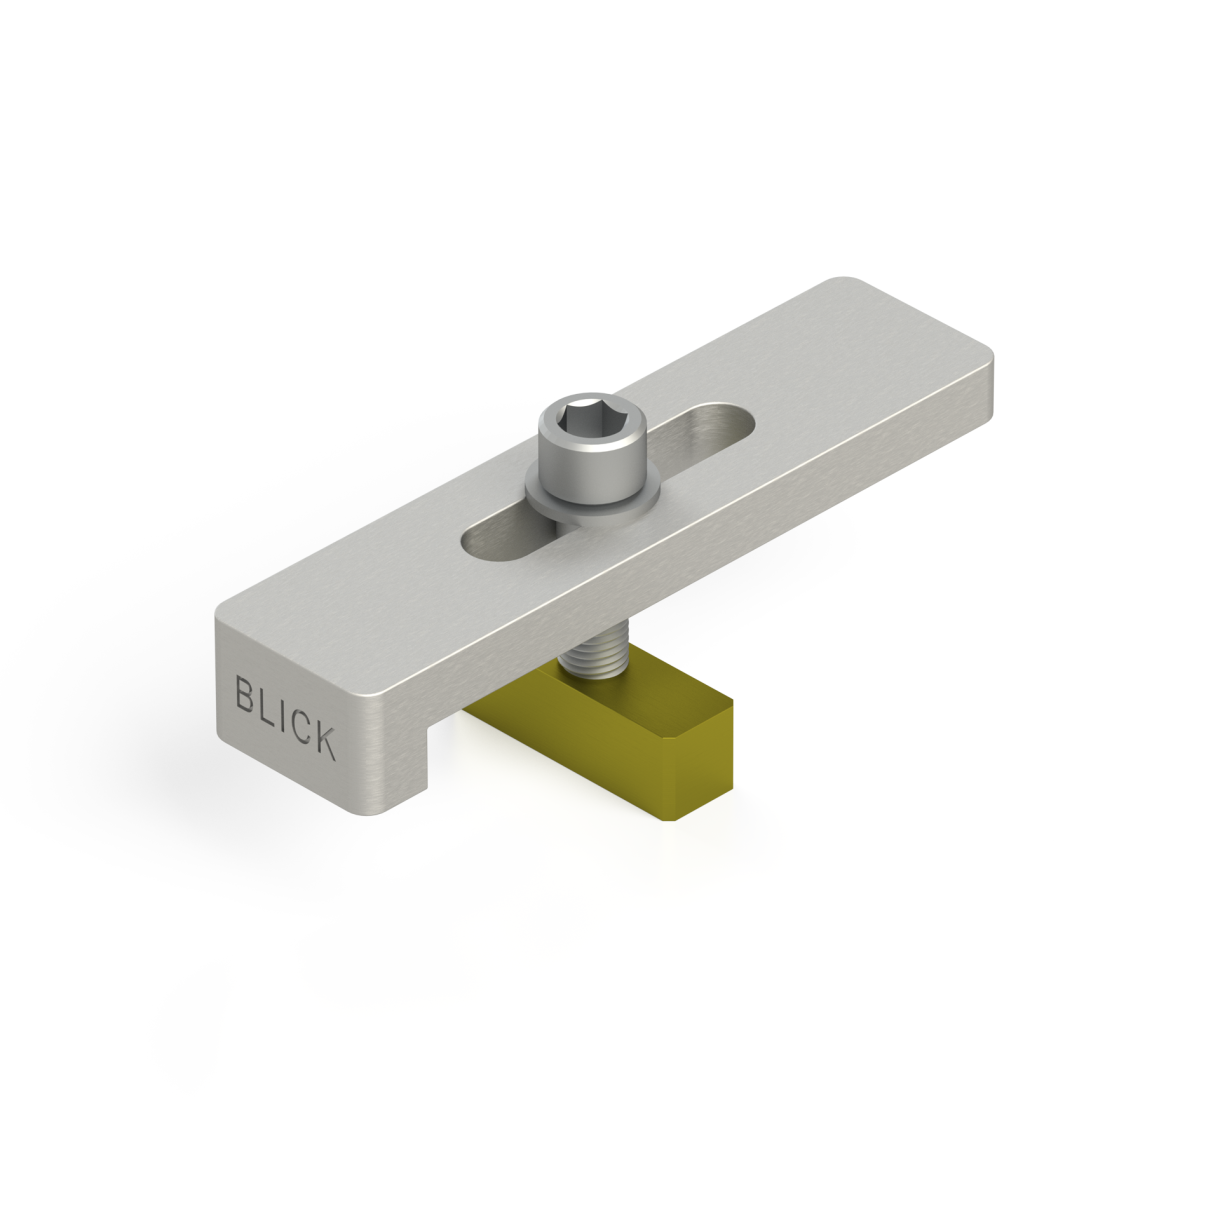 200 mm Slot Clamp for Breton slotted tables by BLICK INDUSTRIES